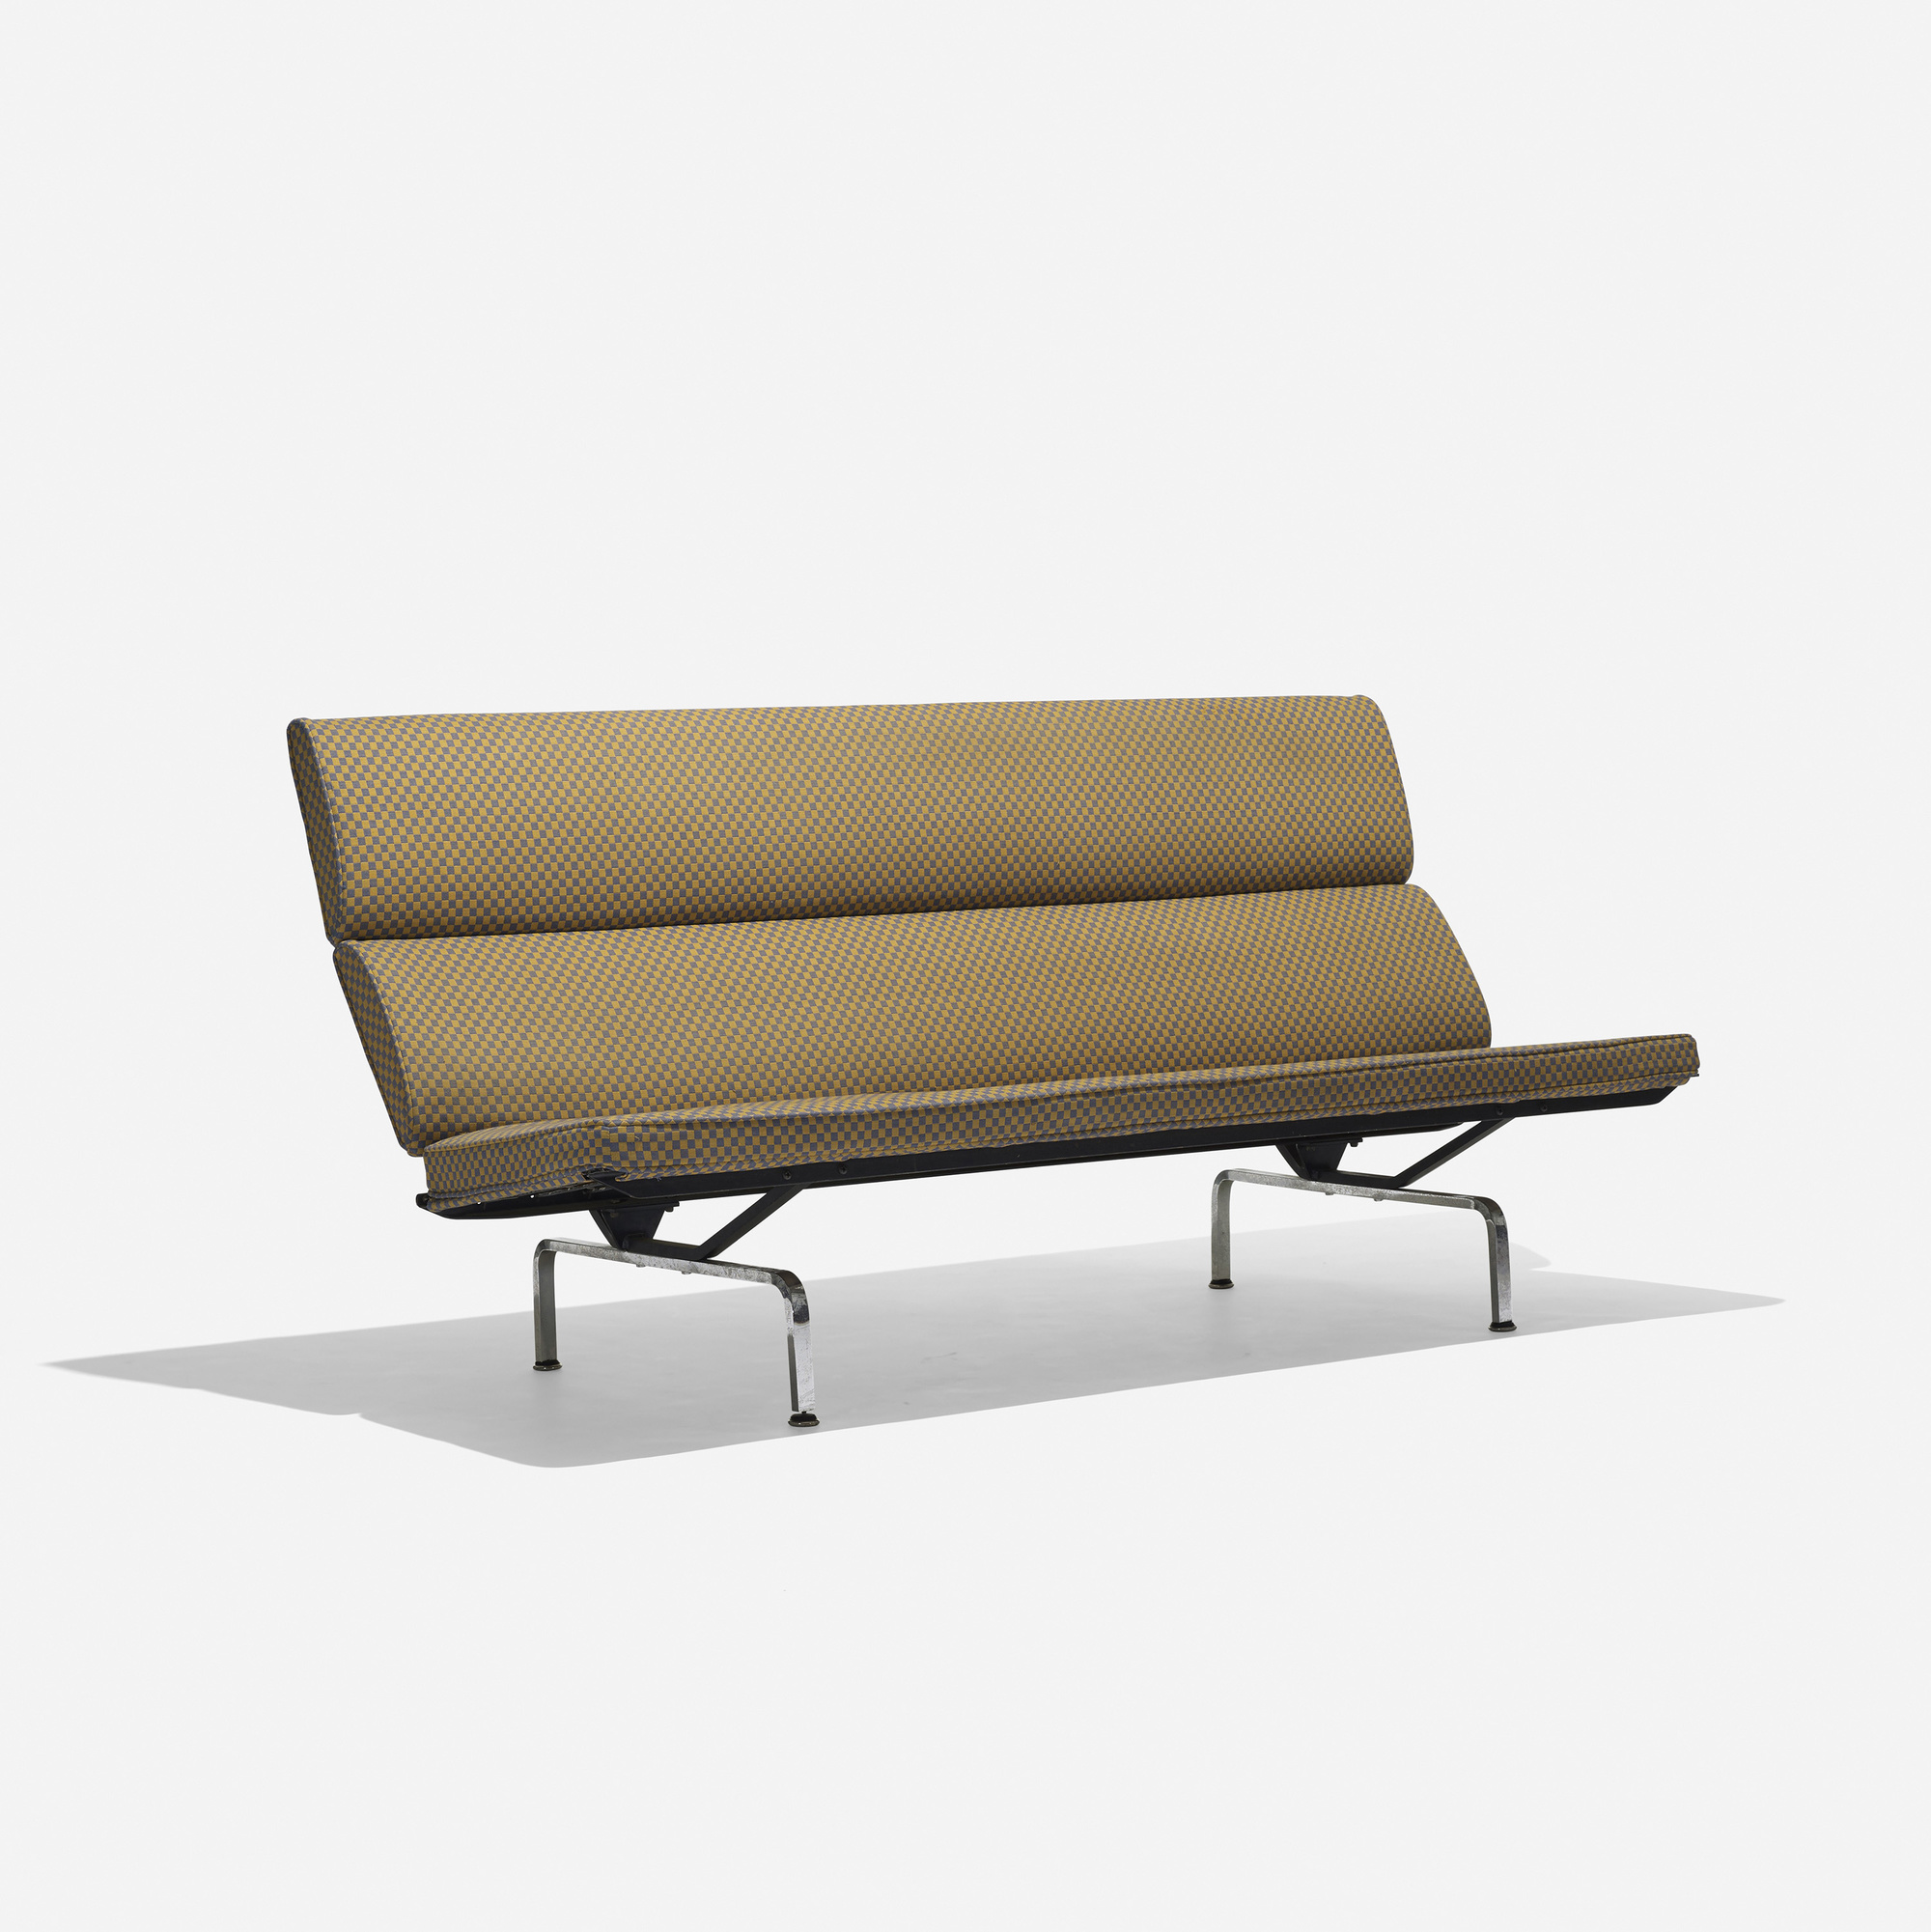 ... 212: Charles And Ray Eames / Sofa Compact, Model 473 (2 Of 3